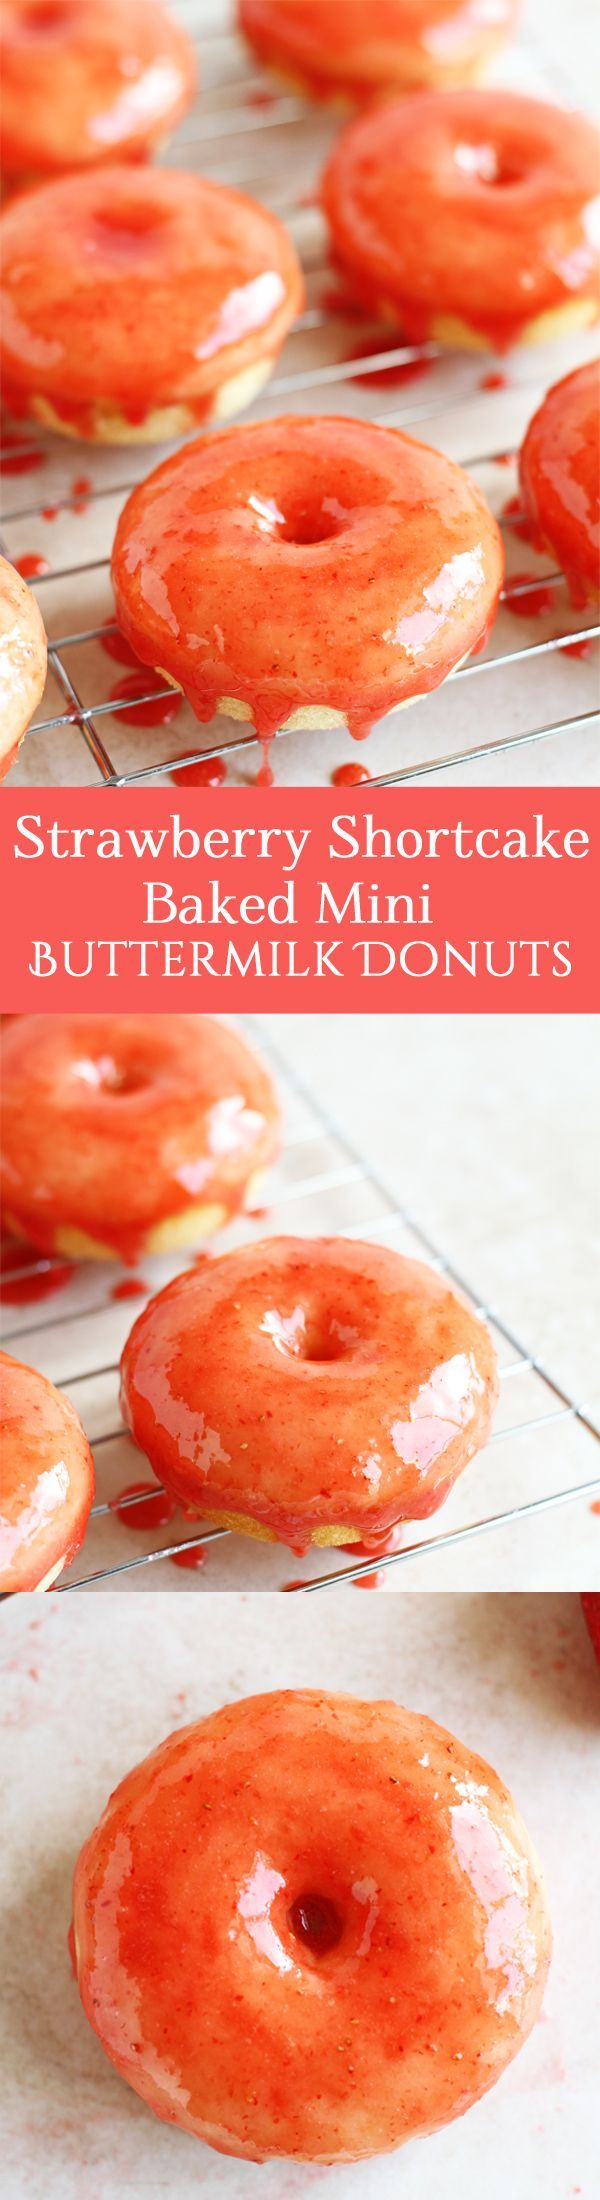 Strawberry Shortcake Baked Mini Buttermilk Donuts - An easy recipe for strawberry shortcake baked mini buttermilk donuts. These delicious glazed strawberry donuts are perfect for breakfast, Valentine's Day or Tea Party by http://ilonaspassion.com /ilonaspassion/